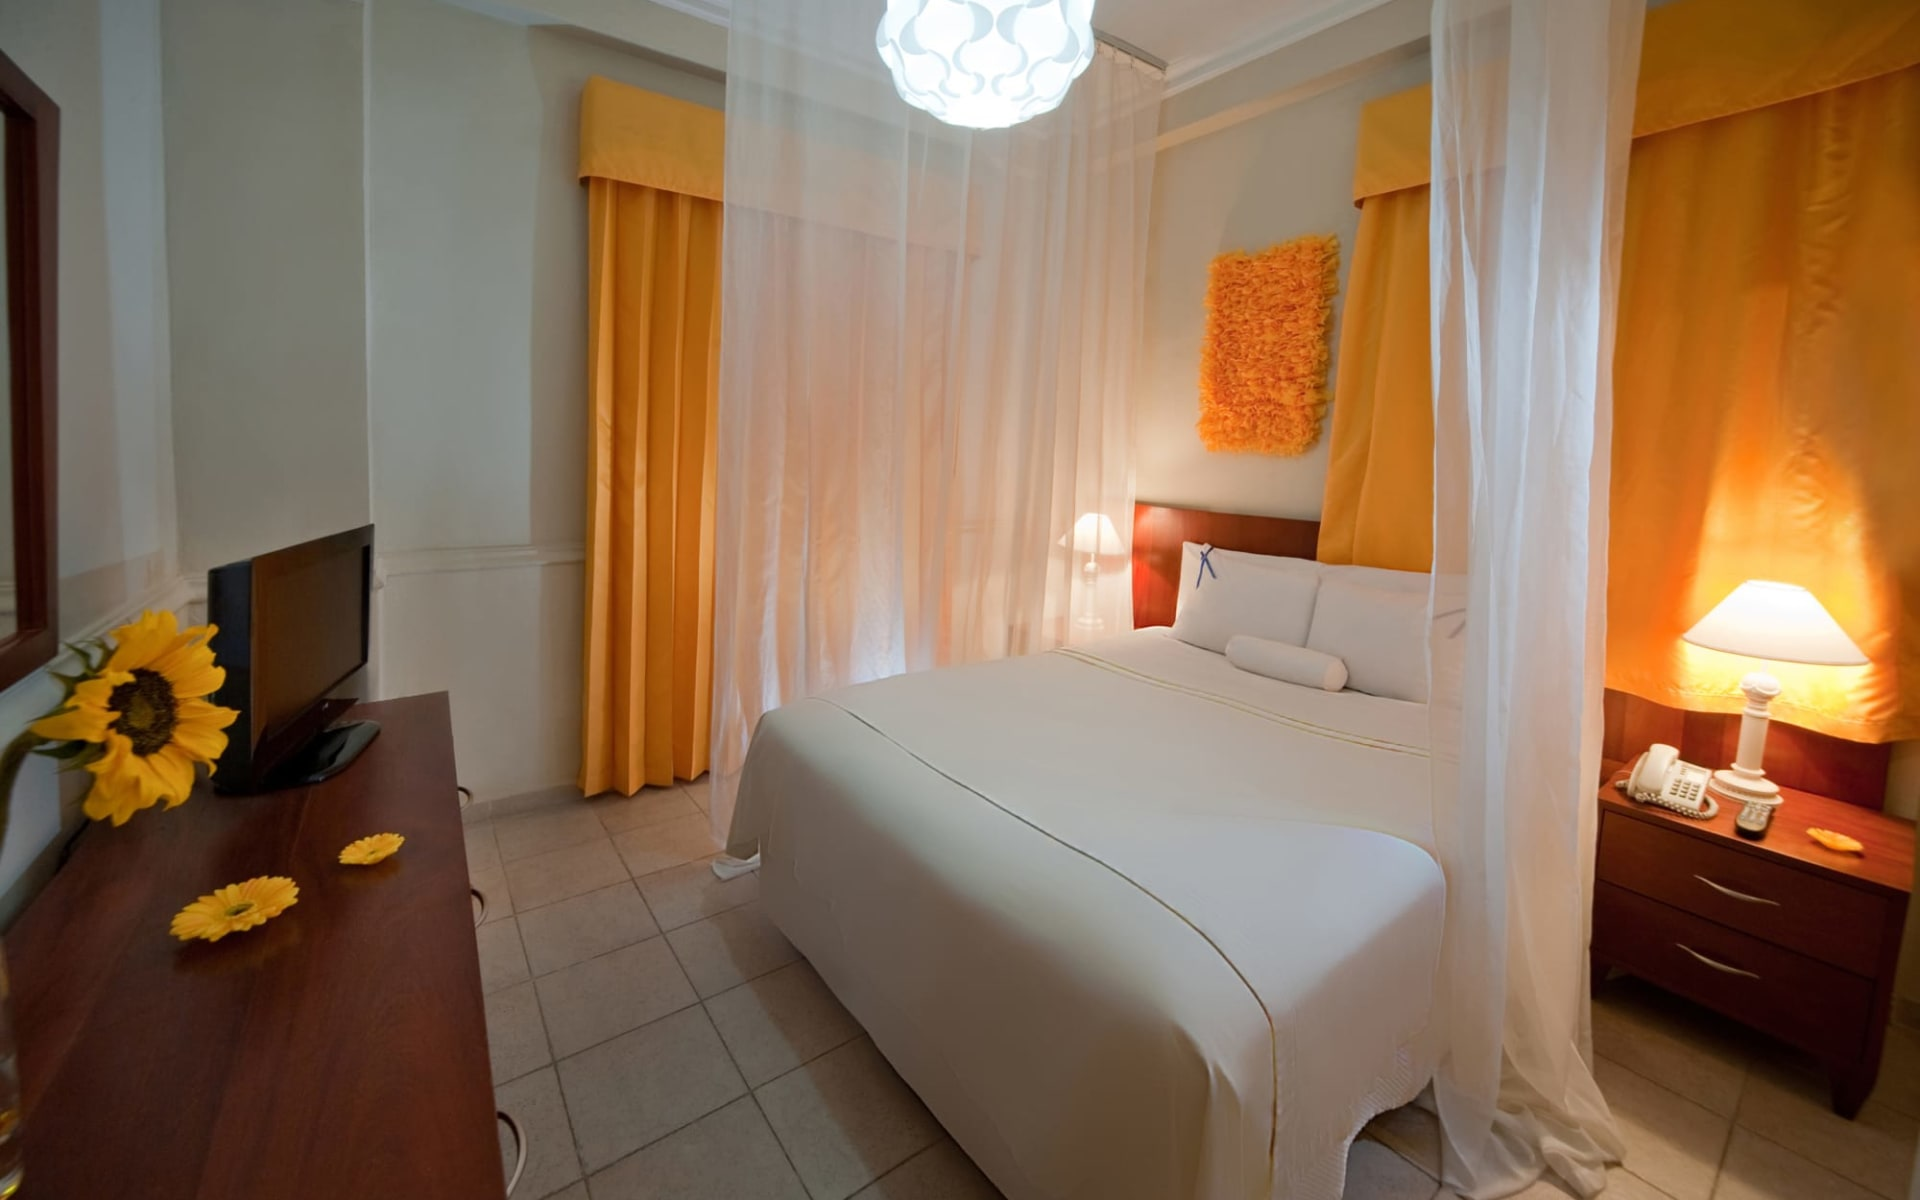 Hodelpa Caribe Colonial in Santo Domingo:  Hodelpa Caribe Colonial - Executive Superior Room